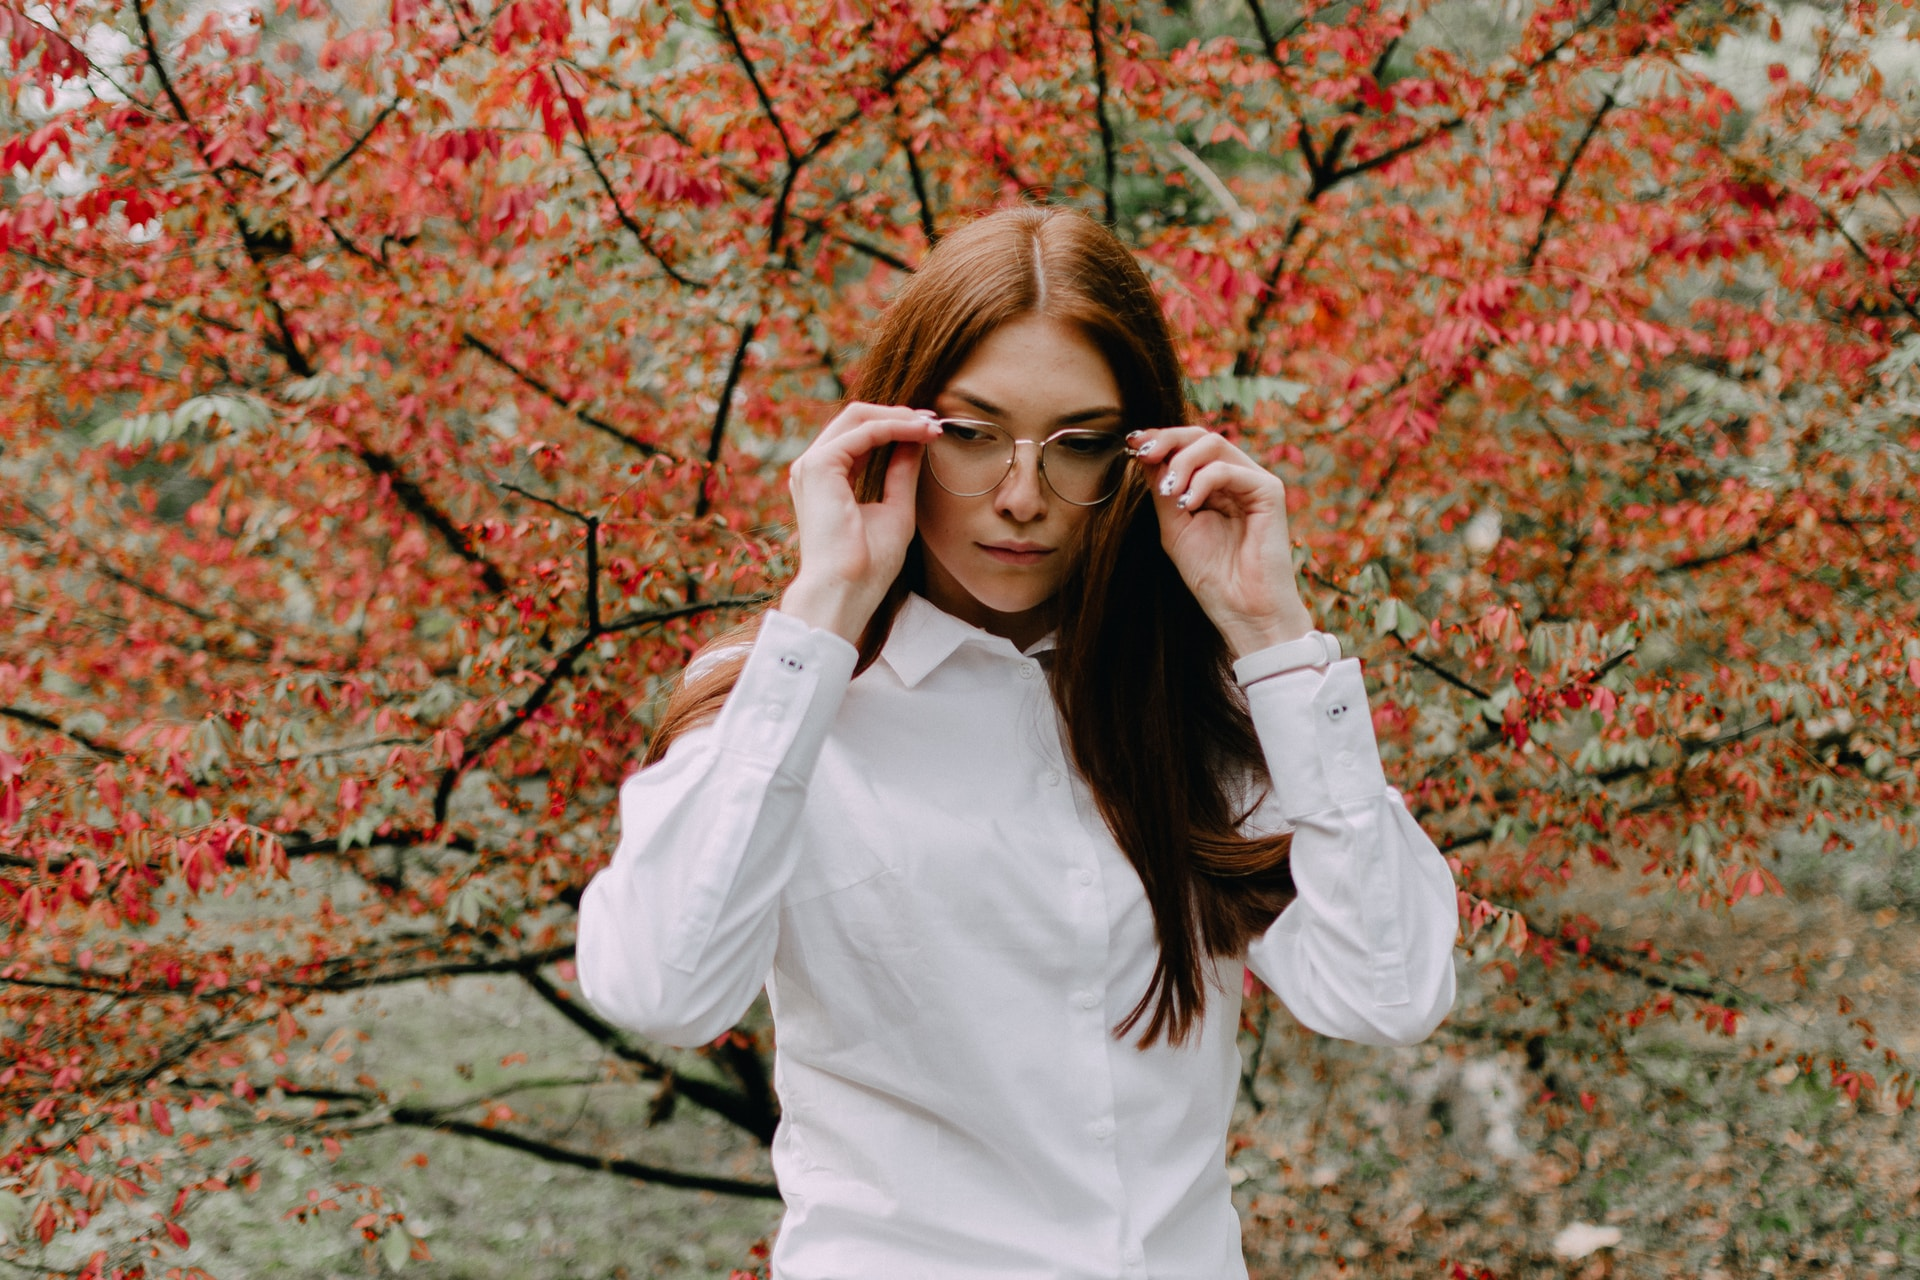 woman in white dress shirt wearing eyeglasses standing near red leaf tree during daytime